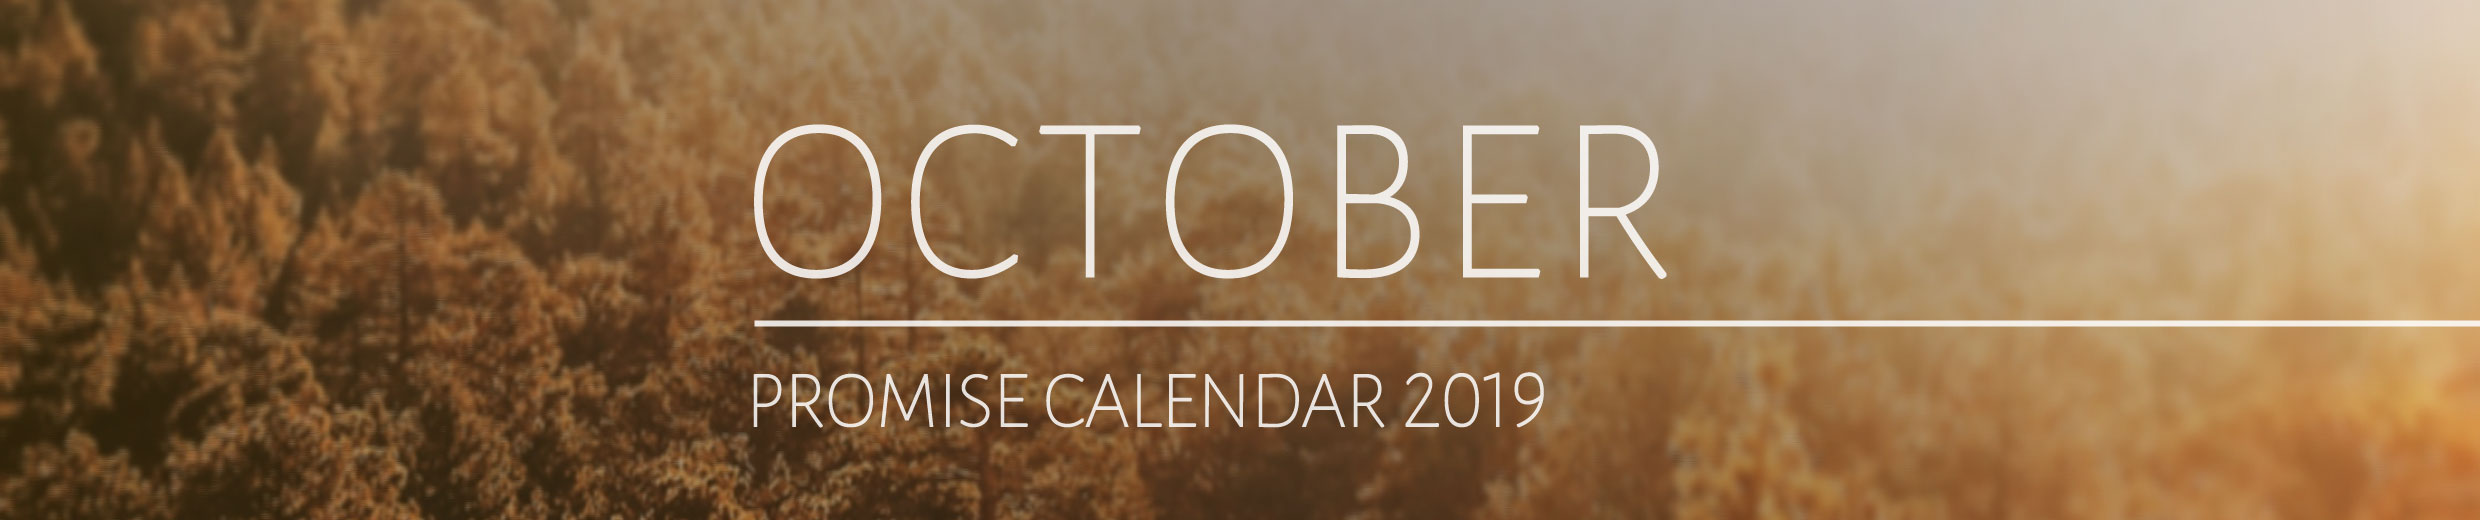 October 2019 Promise Calendar Header